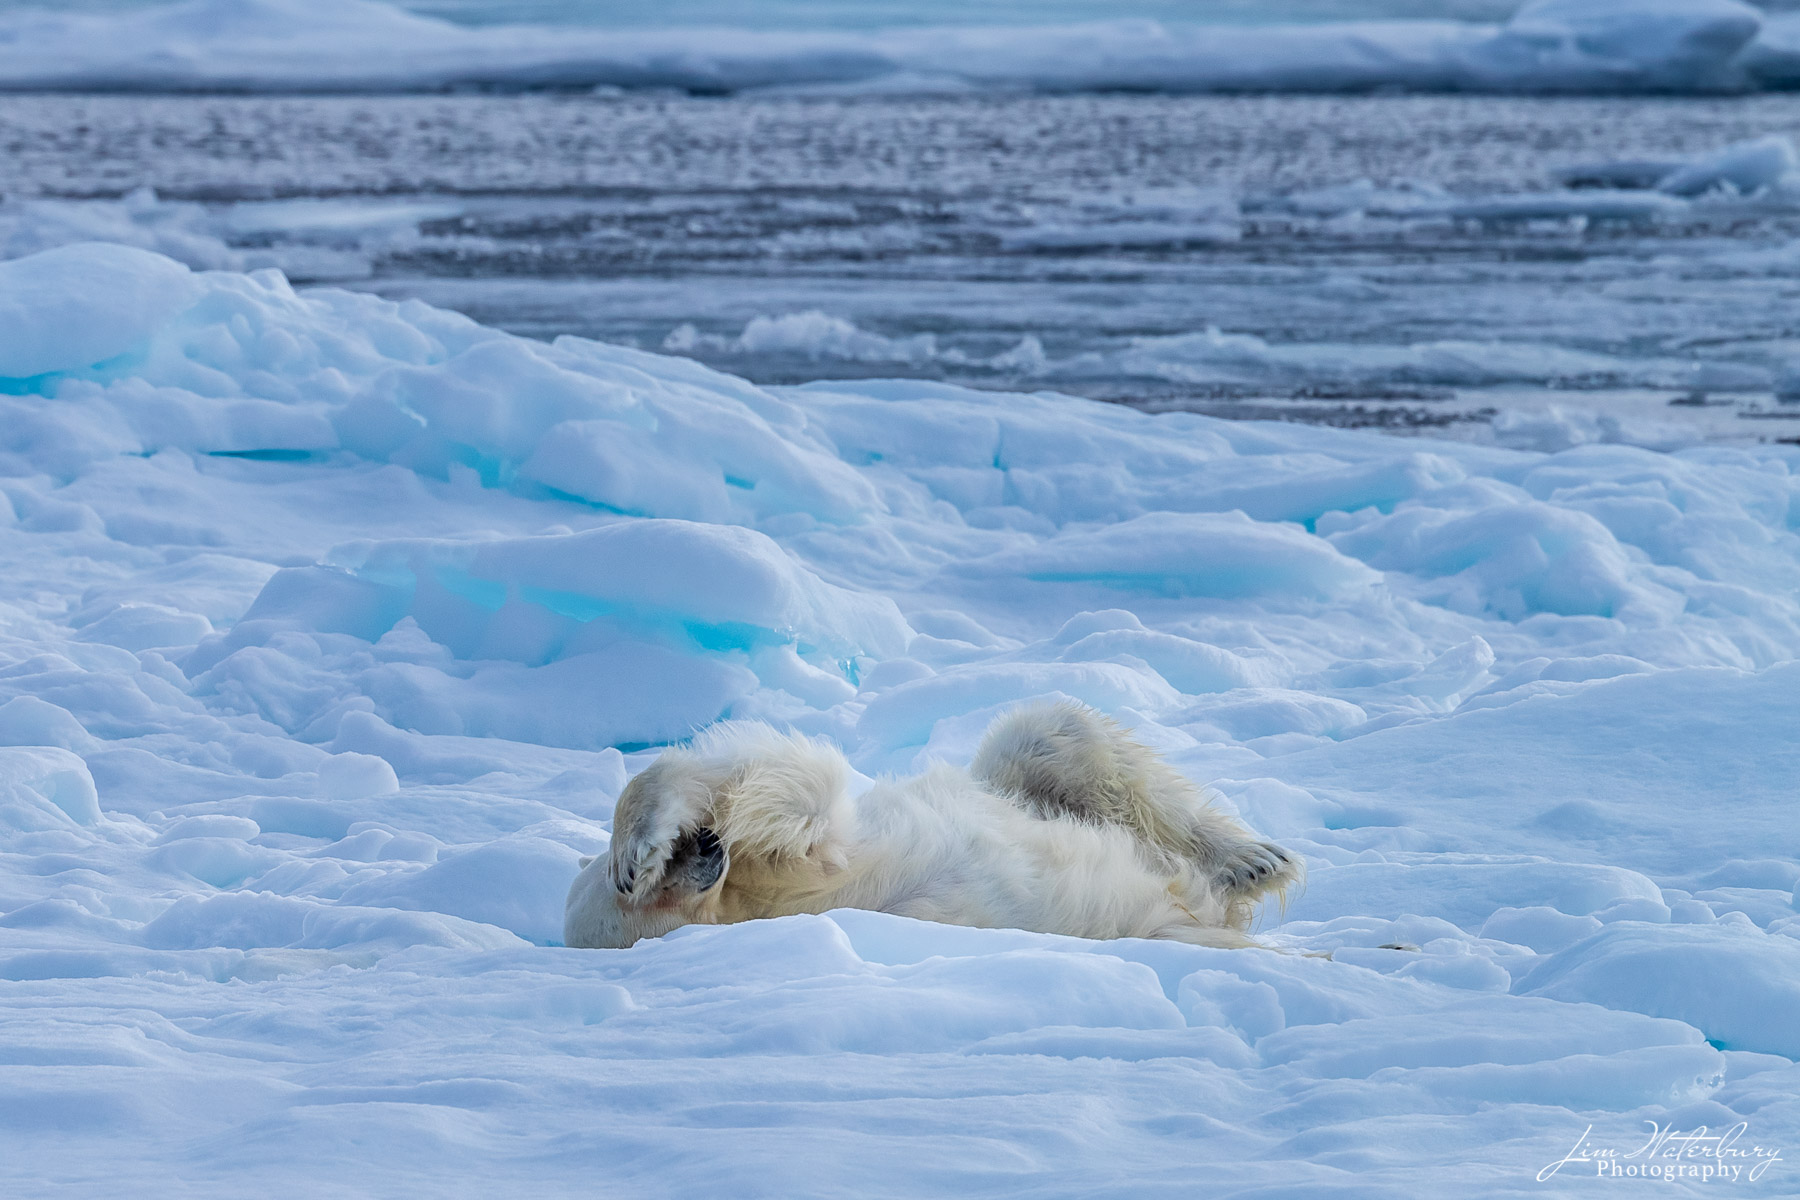 Arctic, Europe, Norway, Svalbard, ice, polar bears, photo